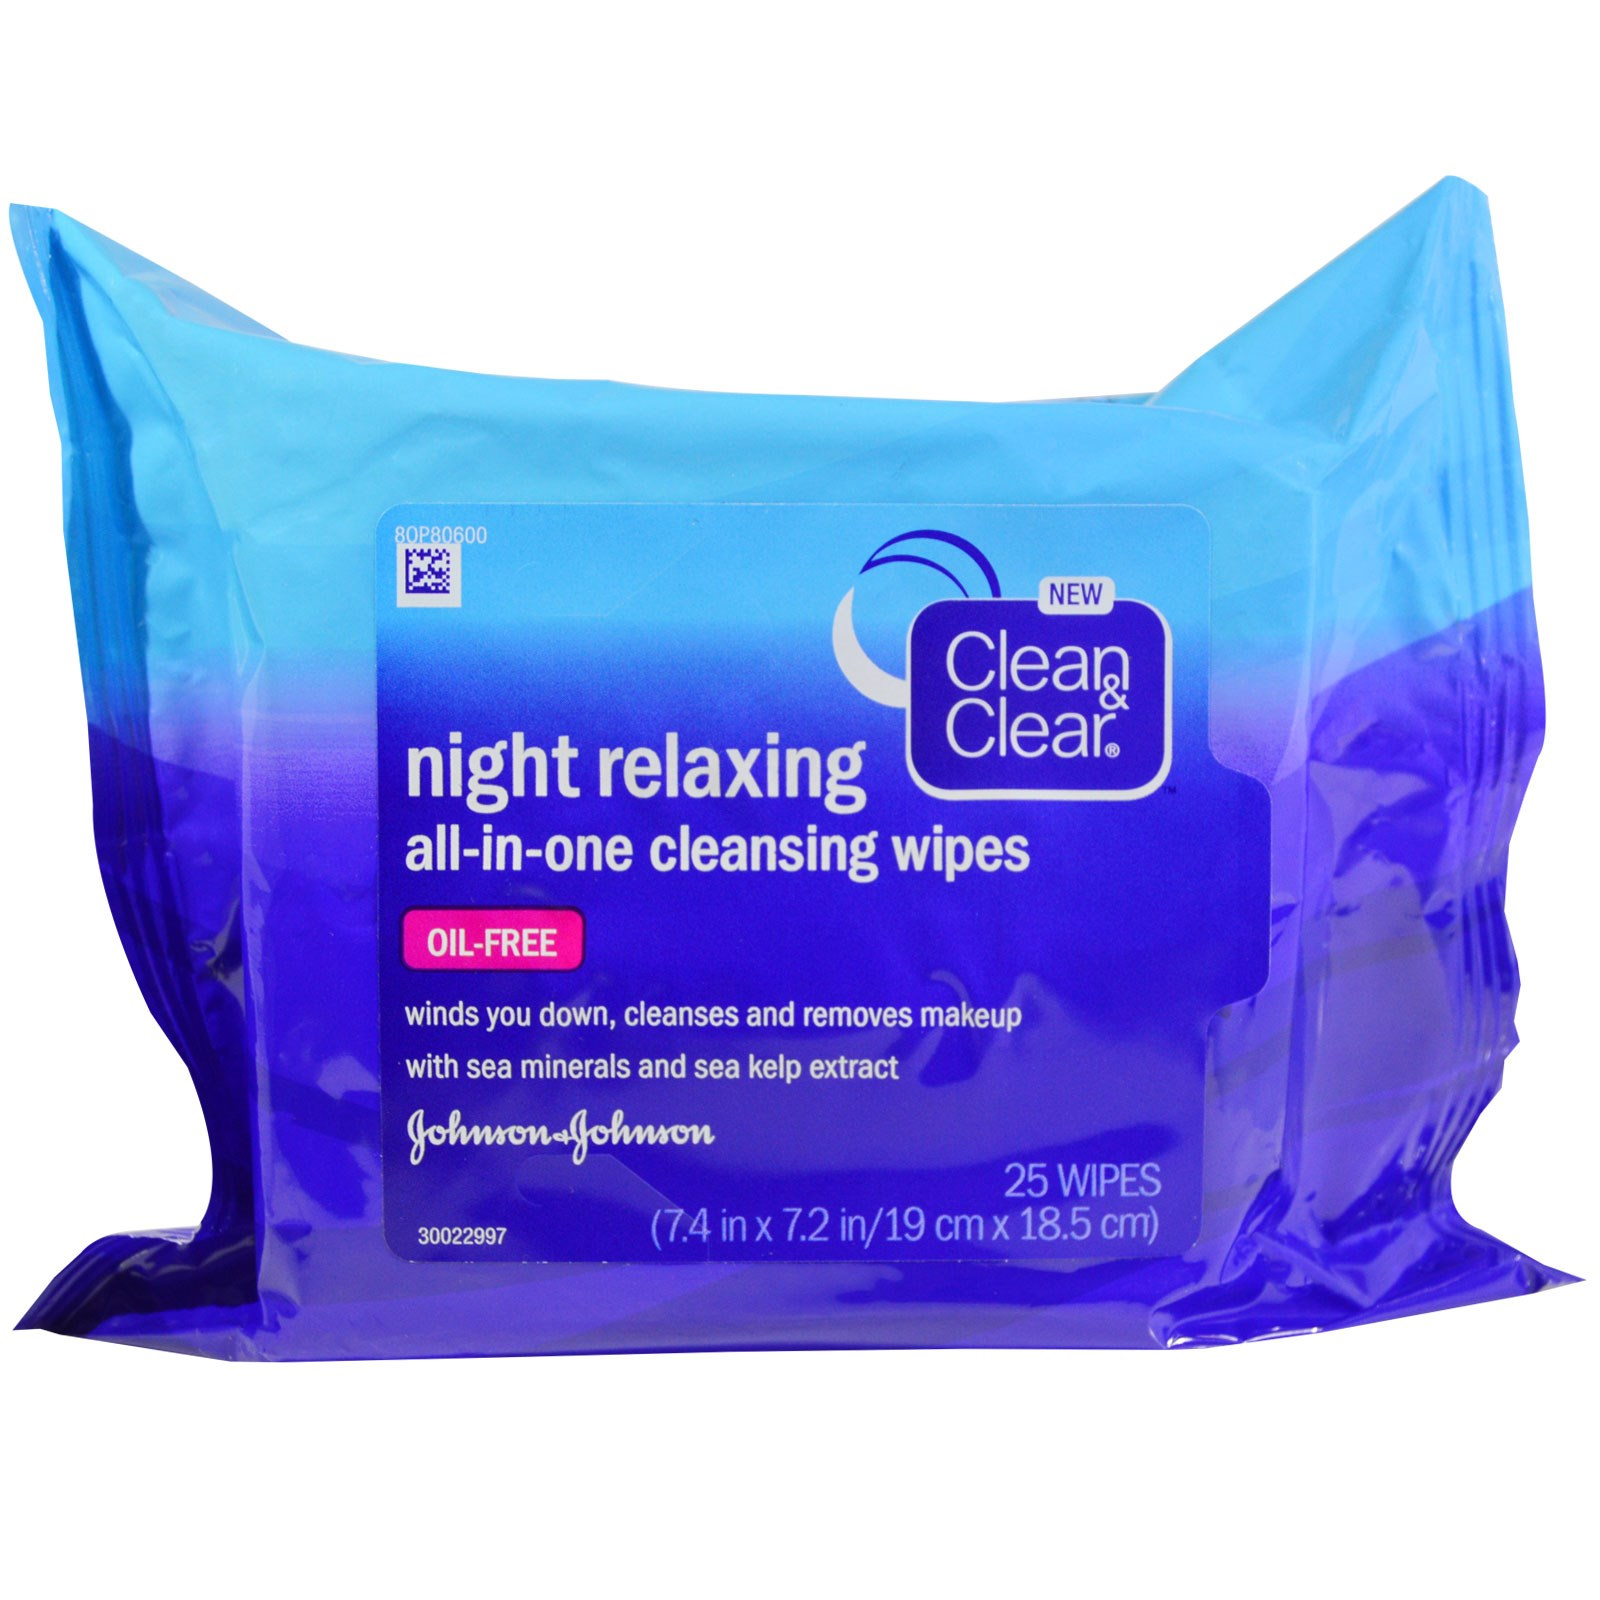 Clean & Clear, Night Relaxing, All-In-One Cleansing Wipes, 25 Wipes, 7.4 in x 7.2 in (19 cm x 18.5 cm)